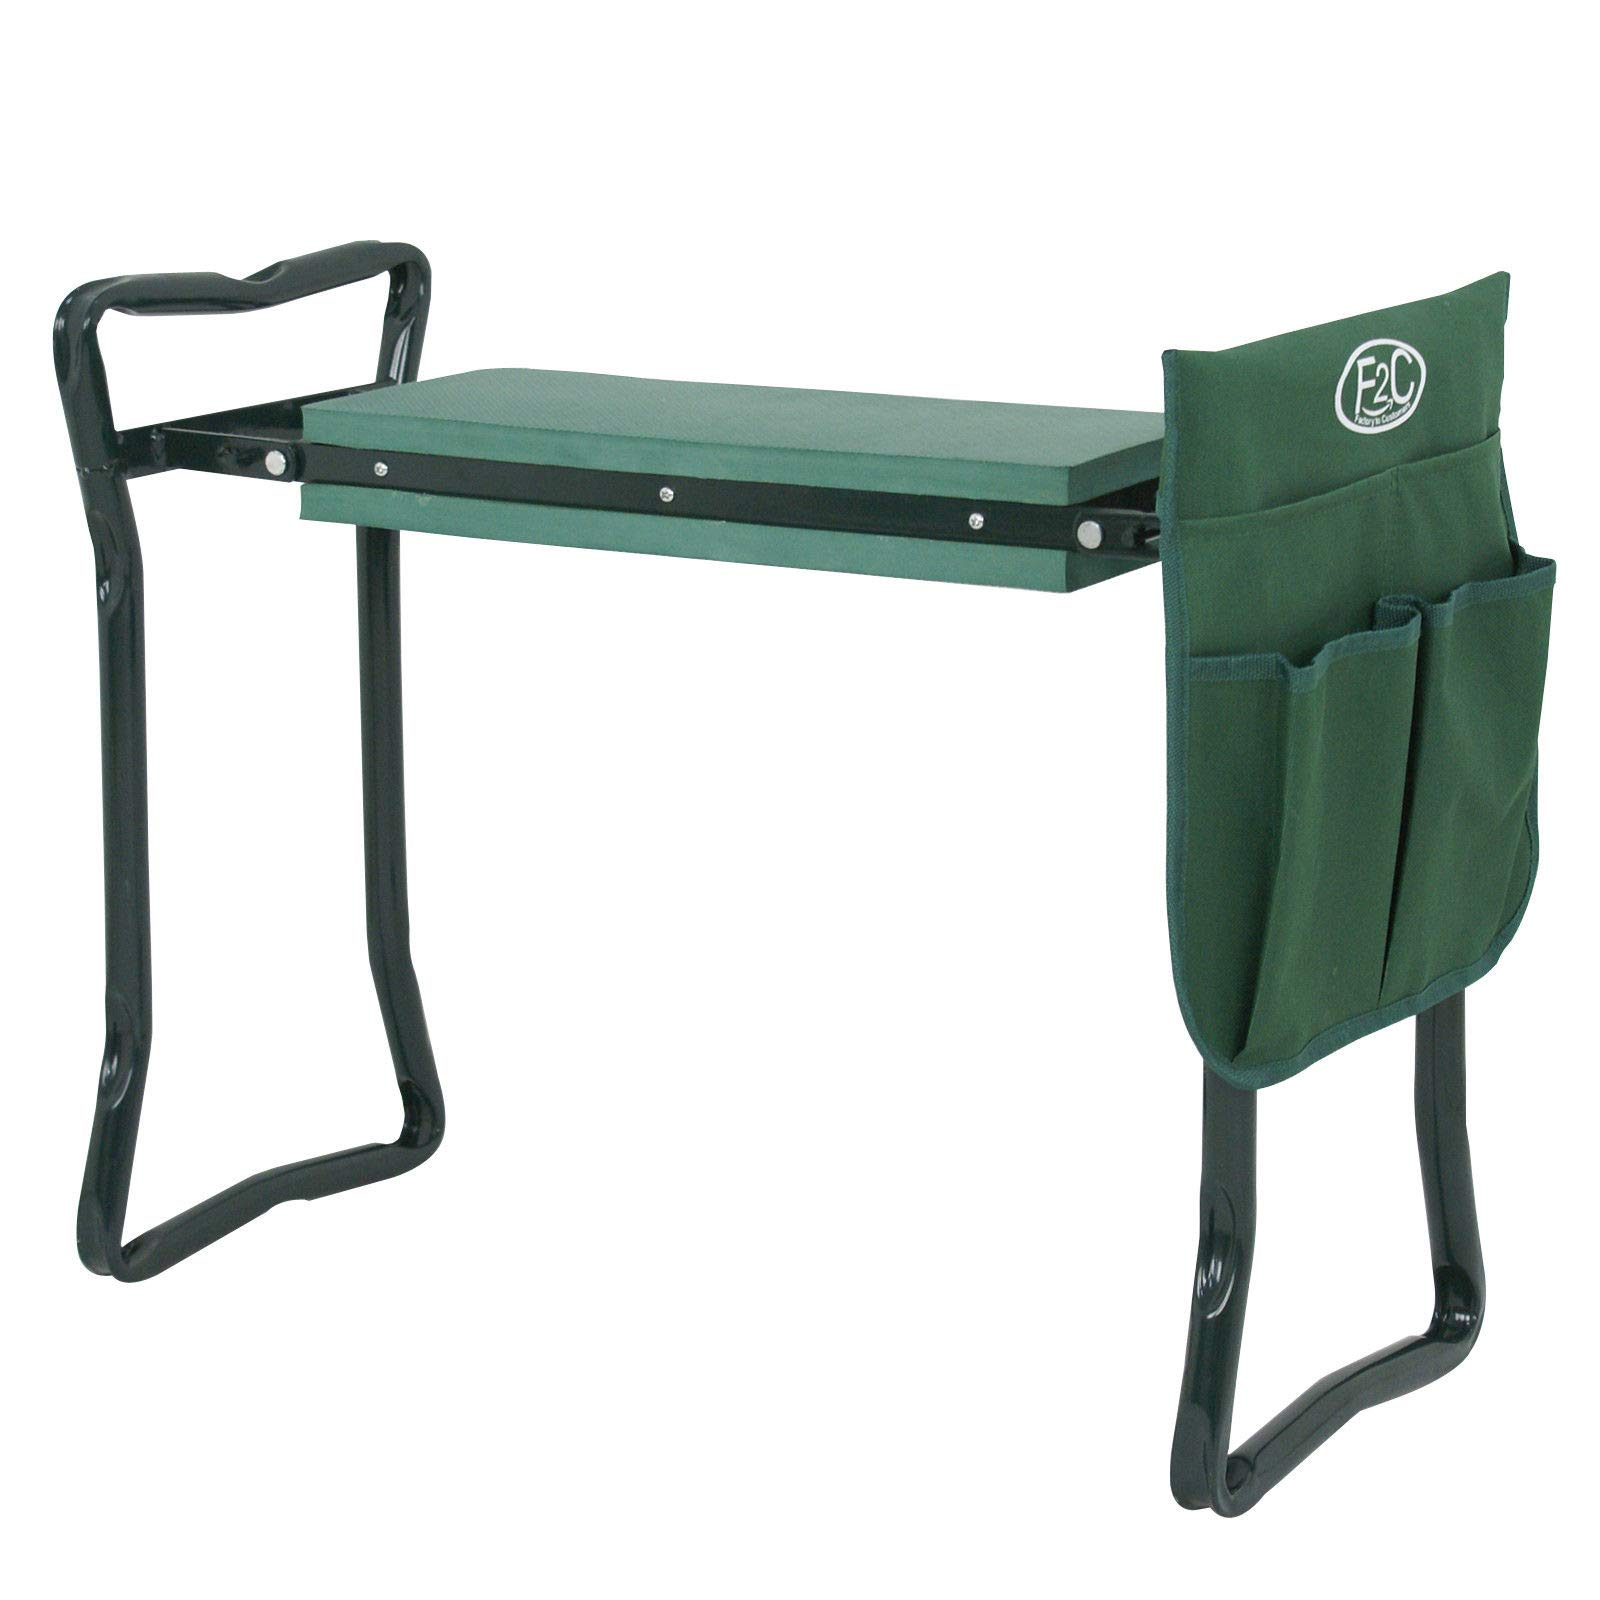 Has_Shop Garden Bench Foldable Kneeler Stool Soft Cushion Seat Pad Kneeling w Tool Pouch by Has_Shop (Image #1)